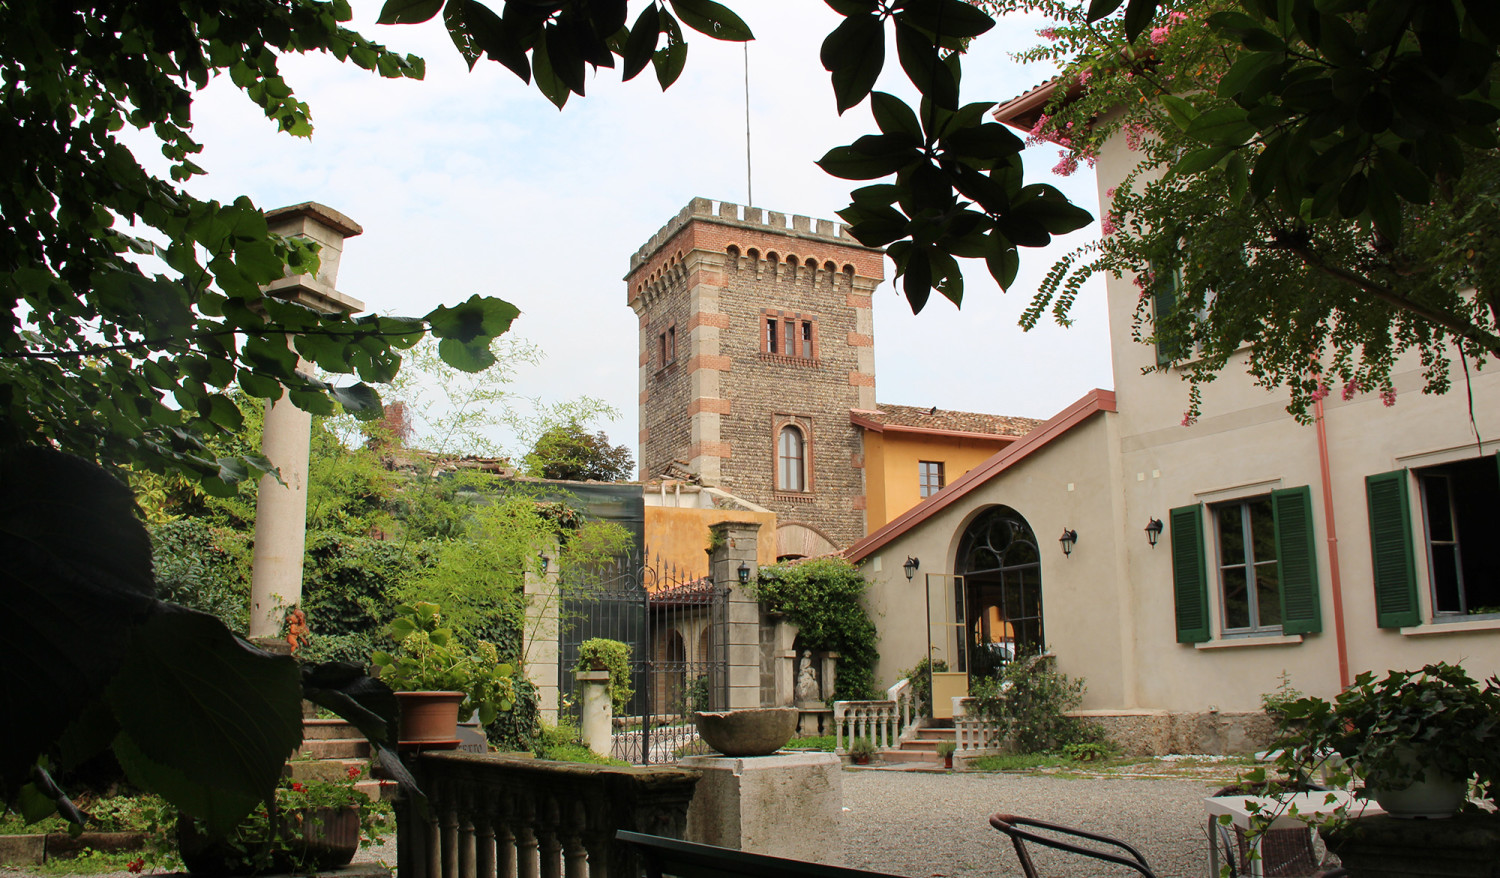 location matrimoni Cassano d'Adda